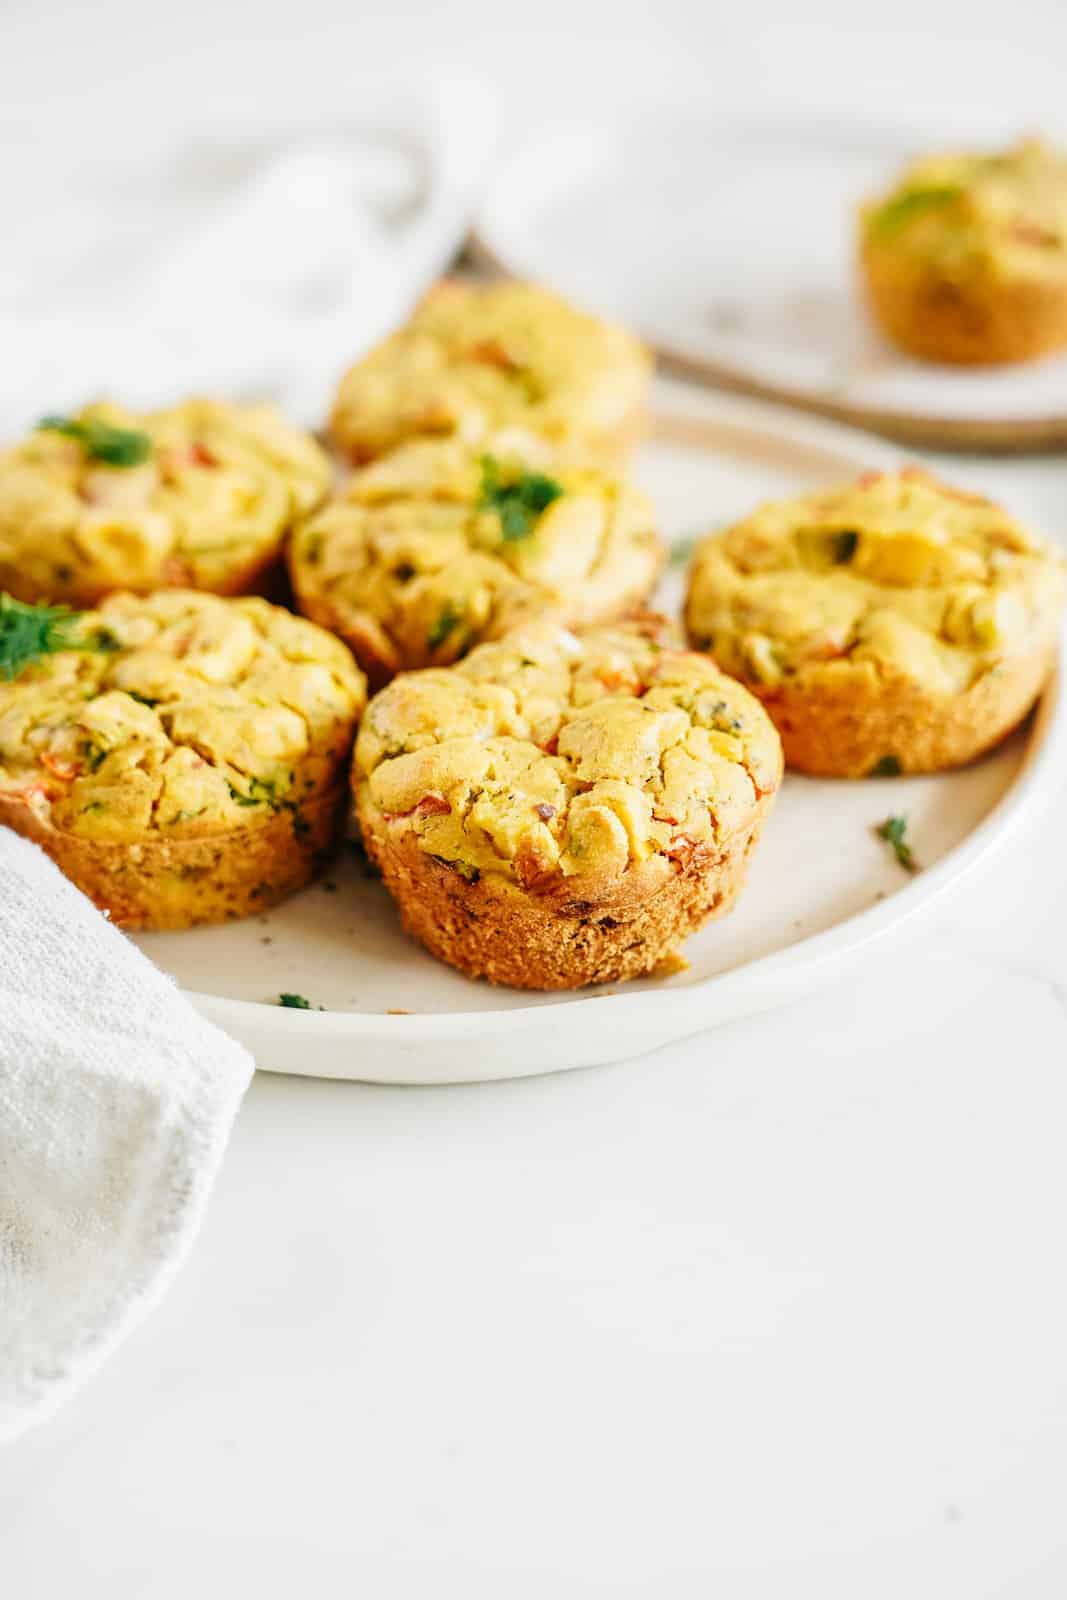 A plate of Savoury Vegan Chickpea Flour Muffins on a plate.